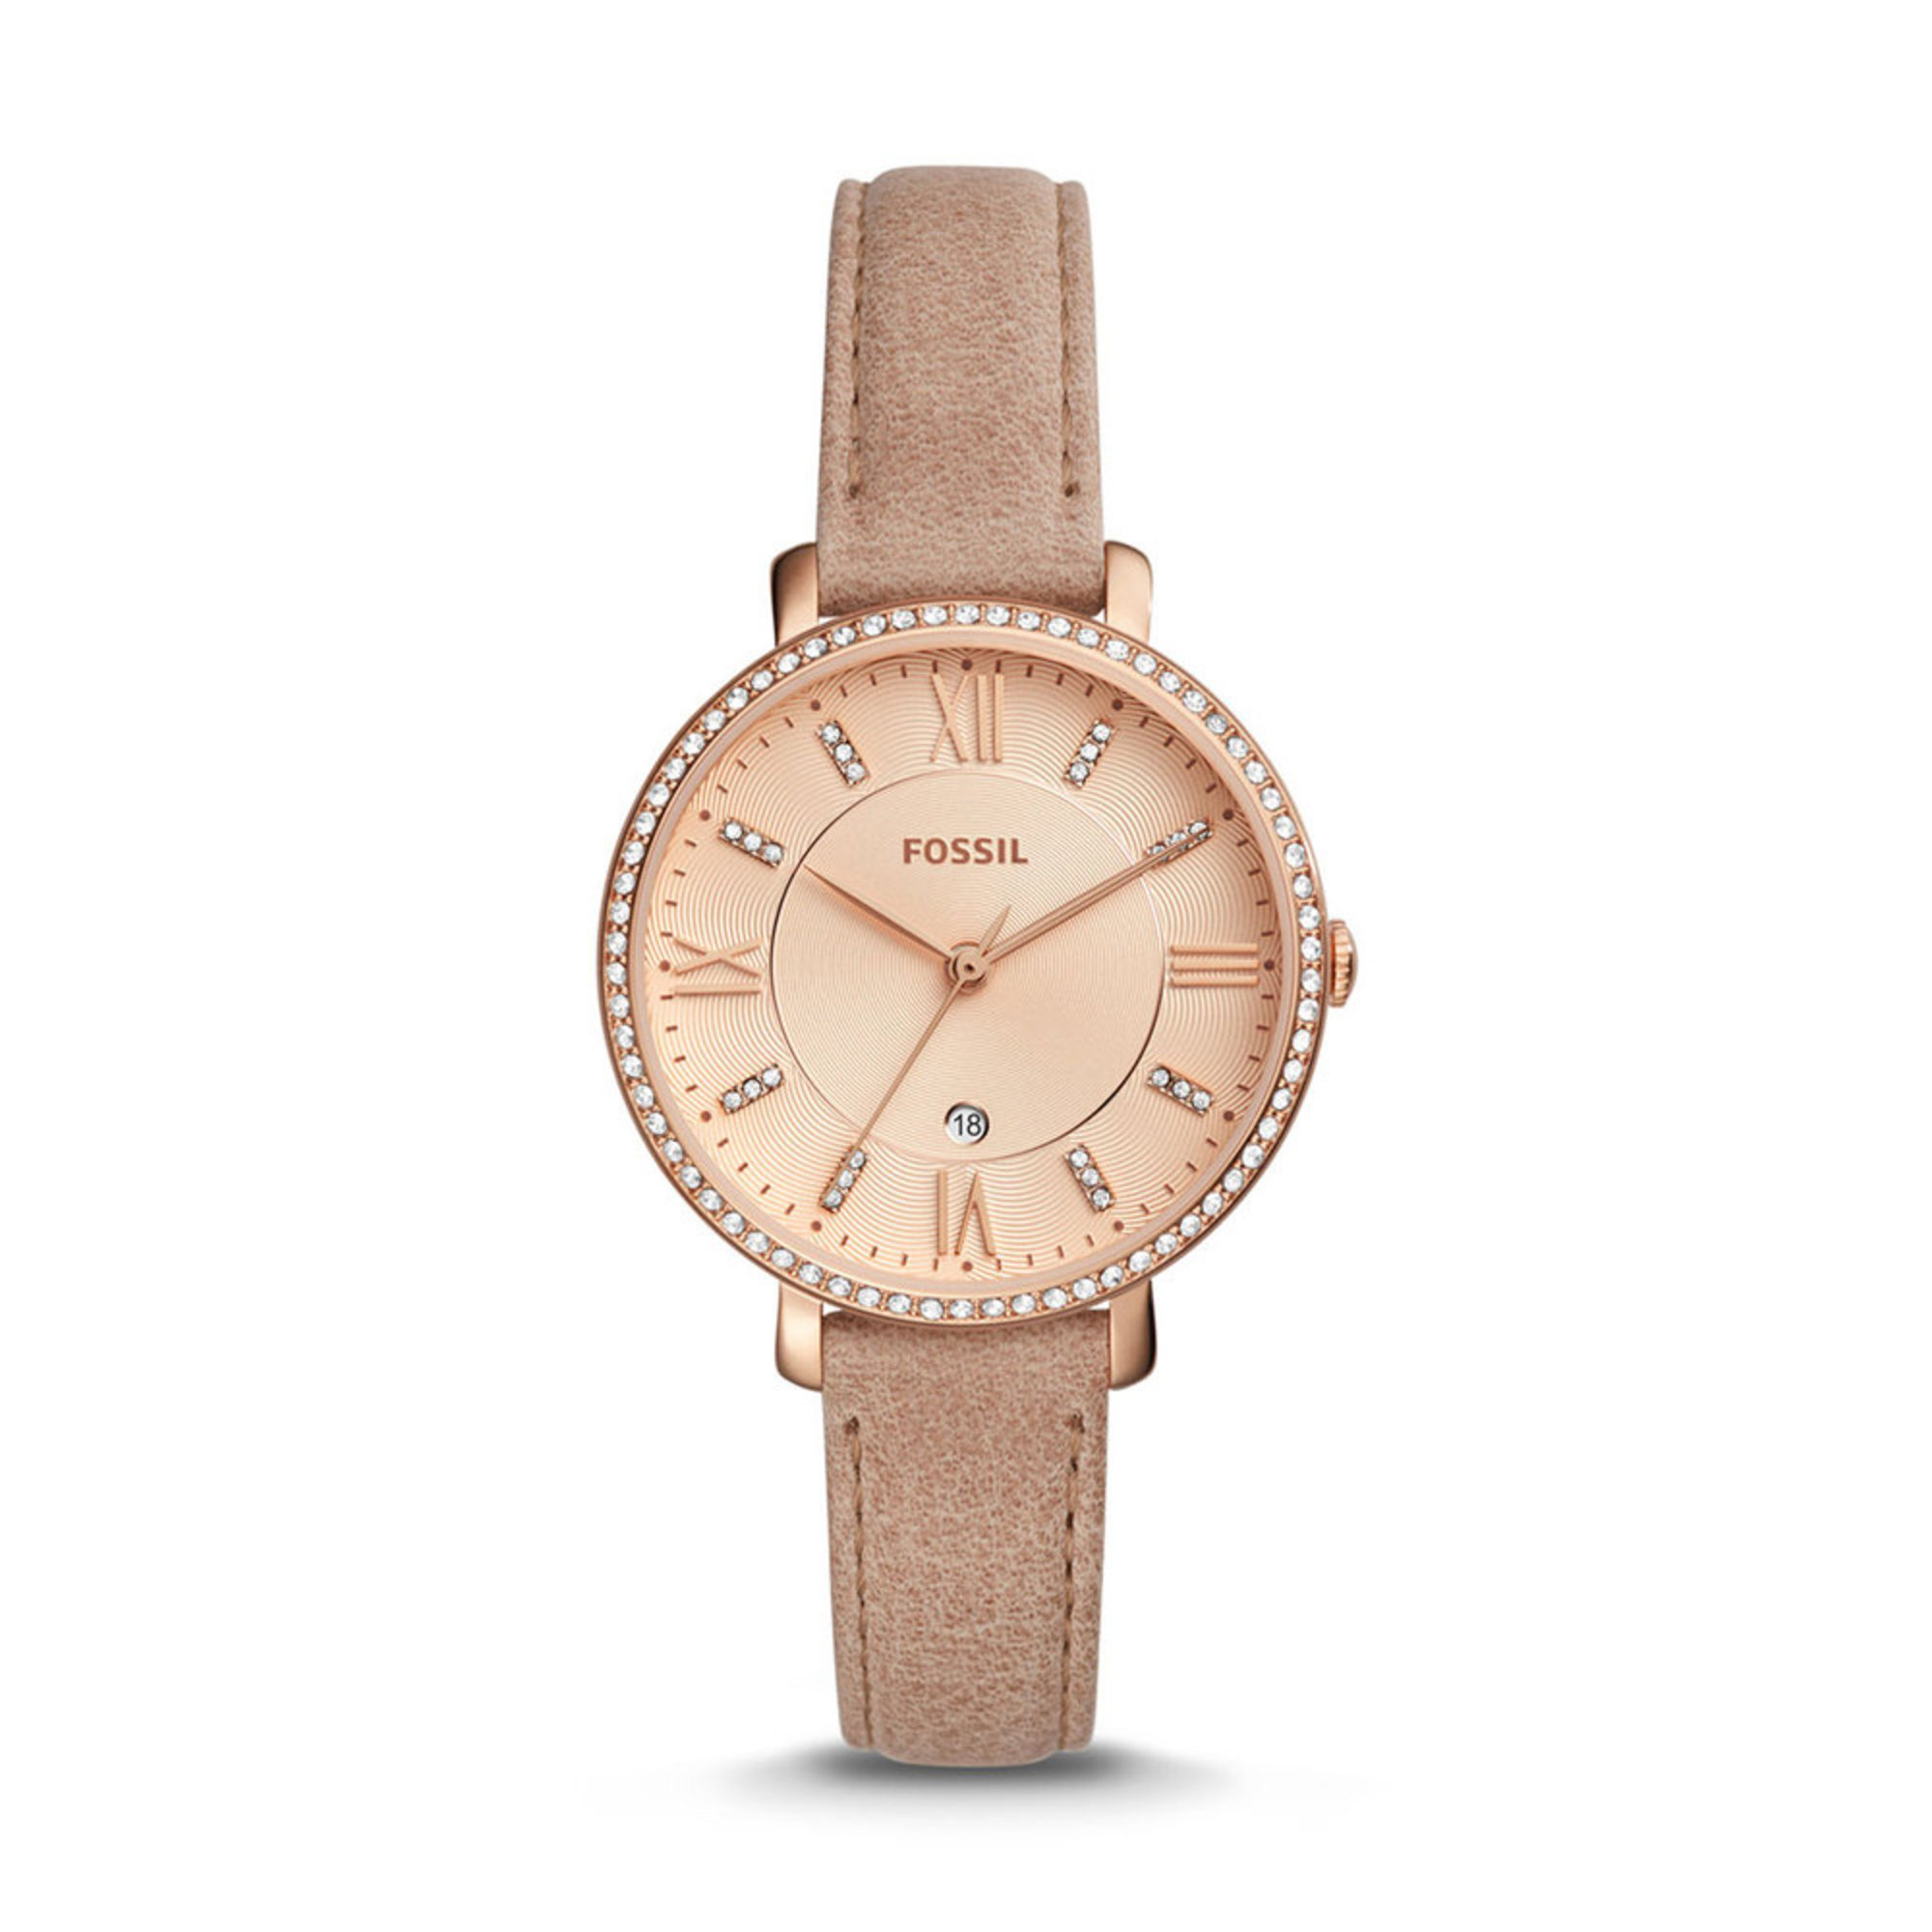 Leather Strap Rose Gold Watch Fossil Women S Jacqueline Rose Gold Tone Dial Sand Leather Strap Watch 36mm